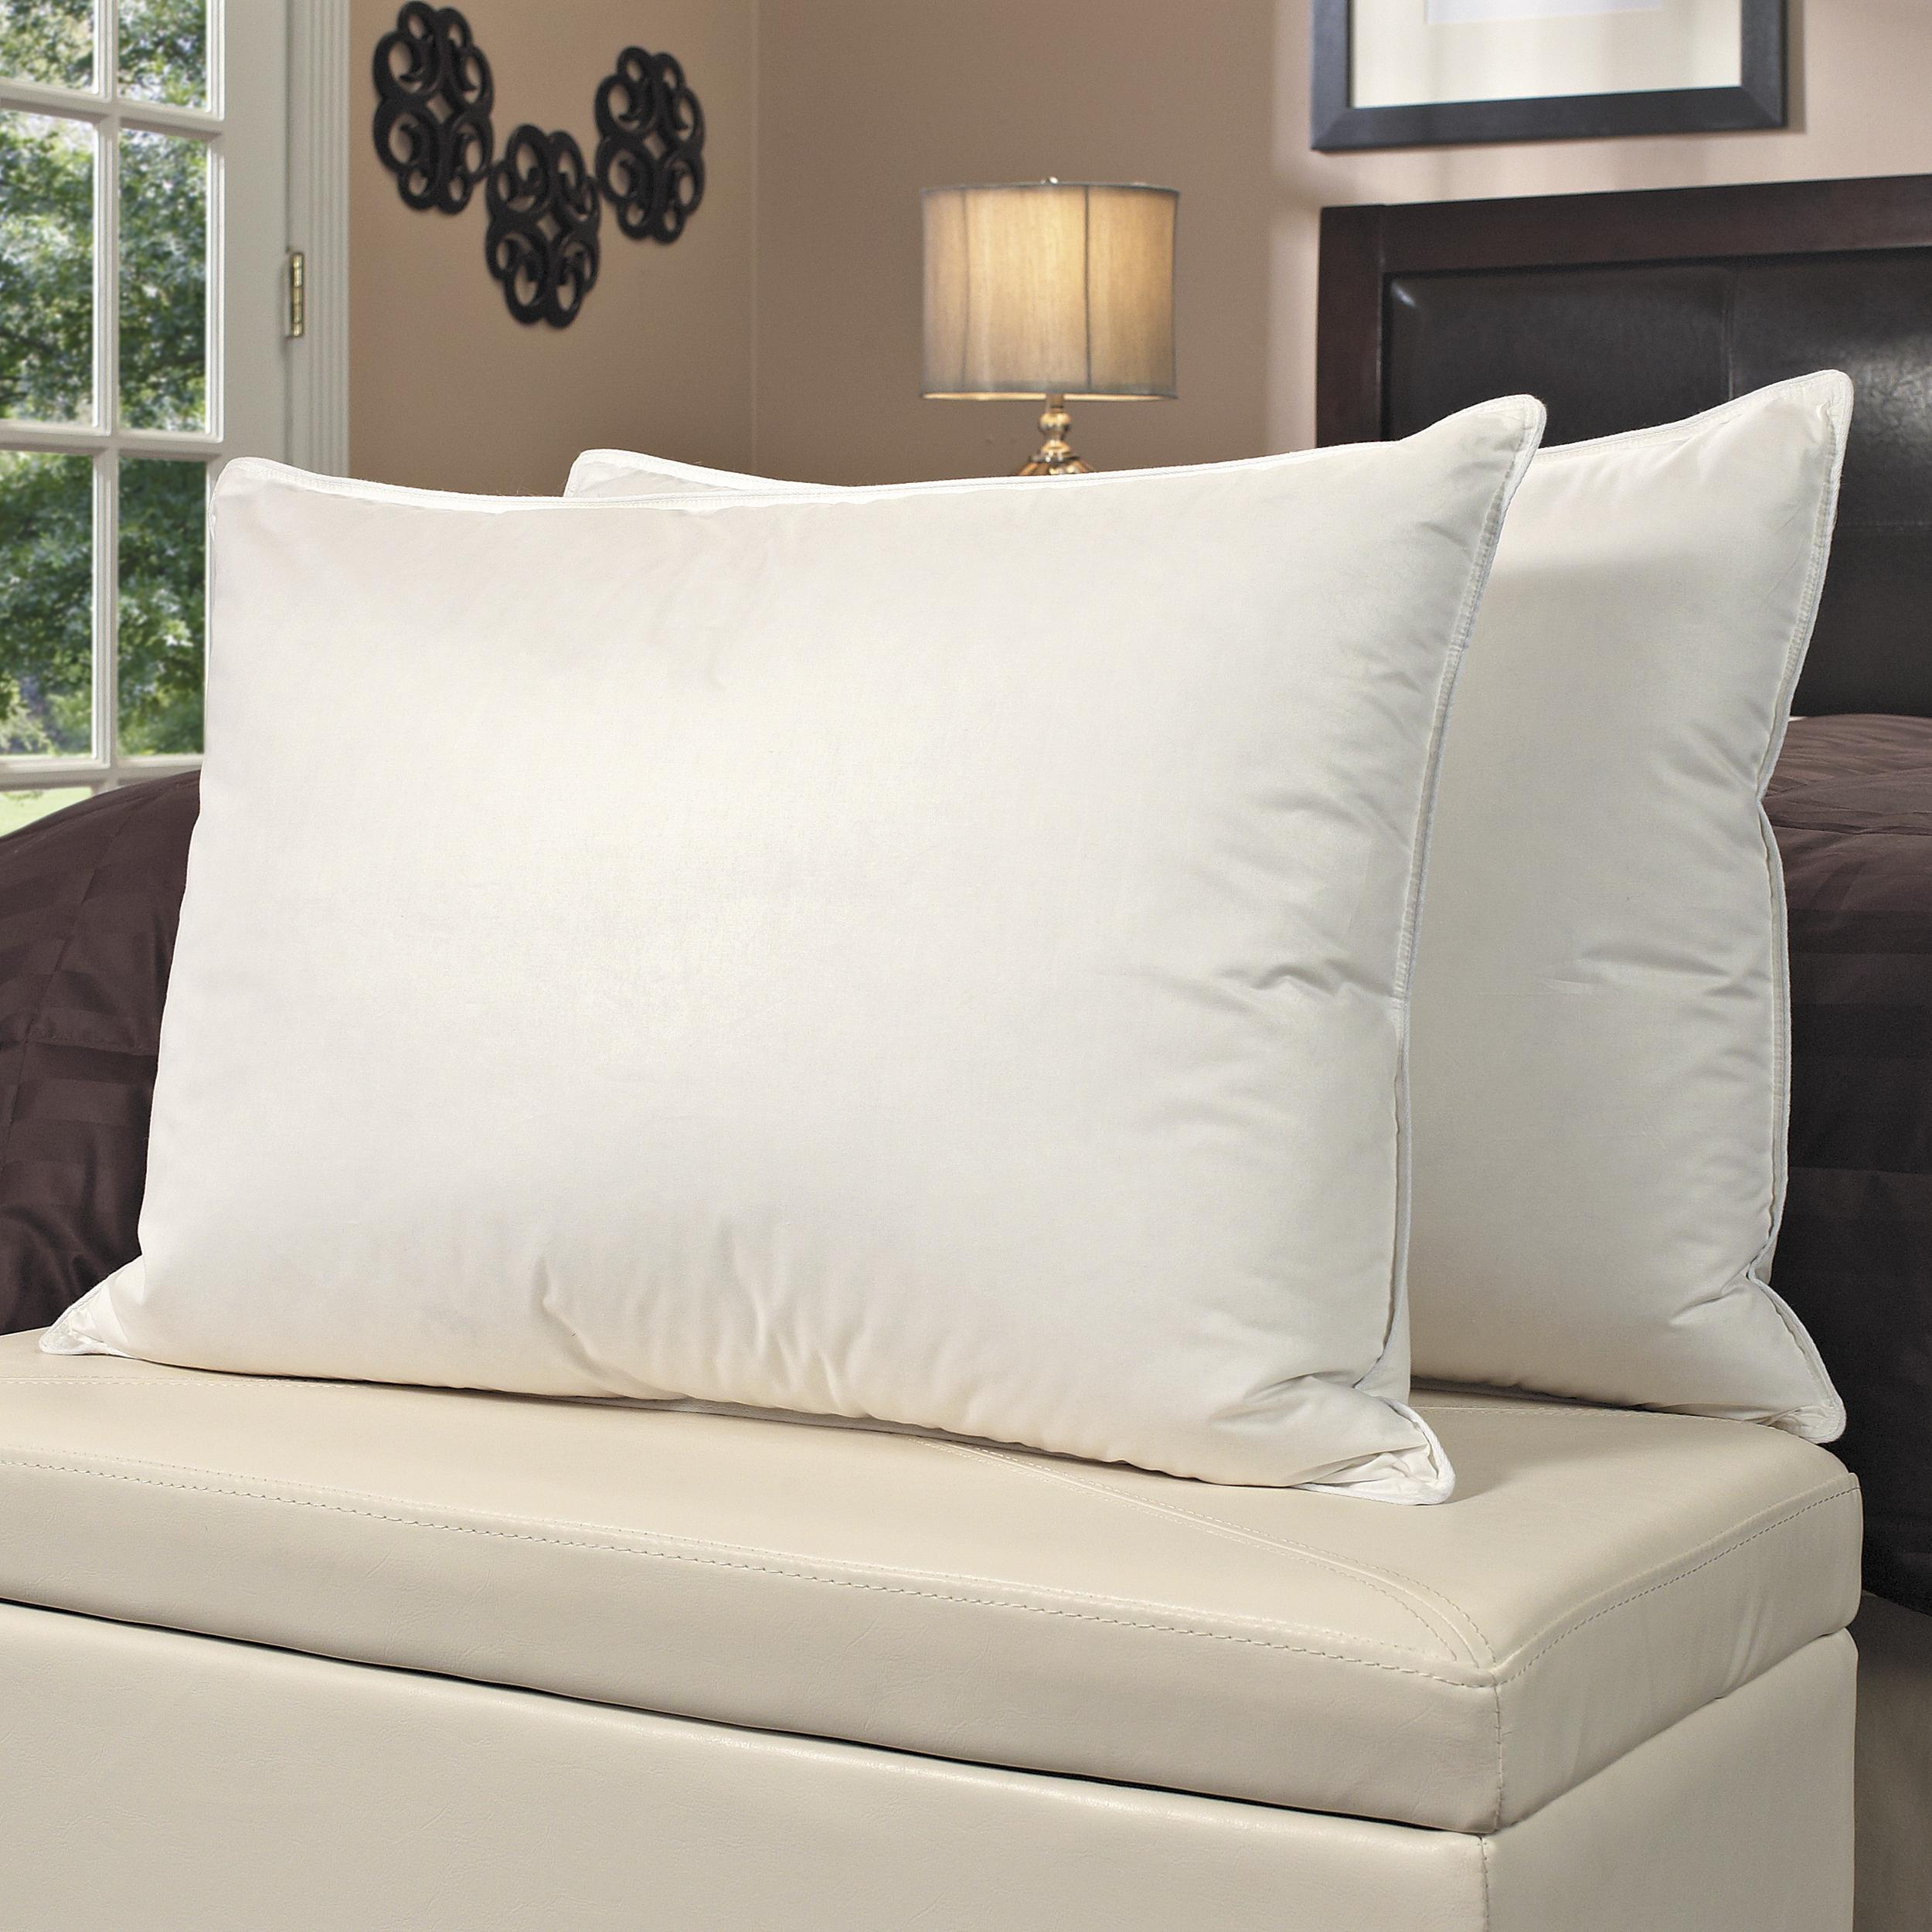 Famous Maker Egyptian Cotton Down Alternative Pillows (Set of 2)